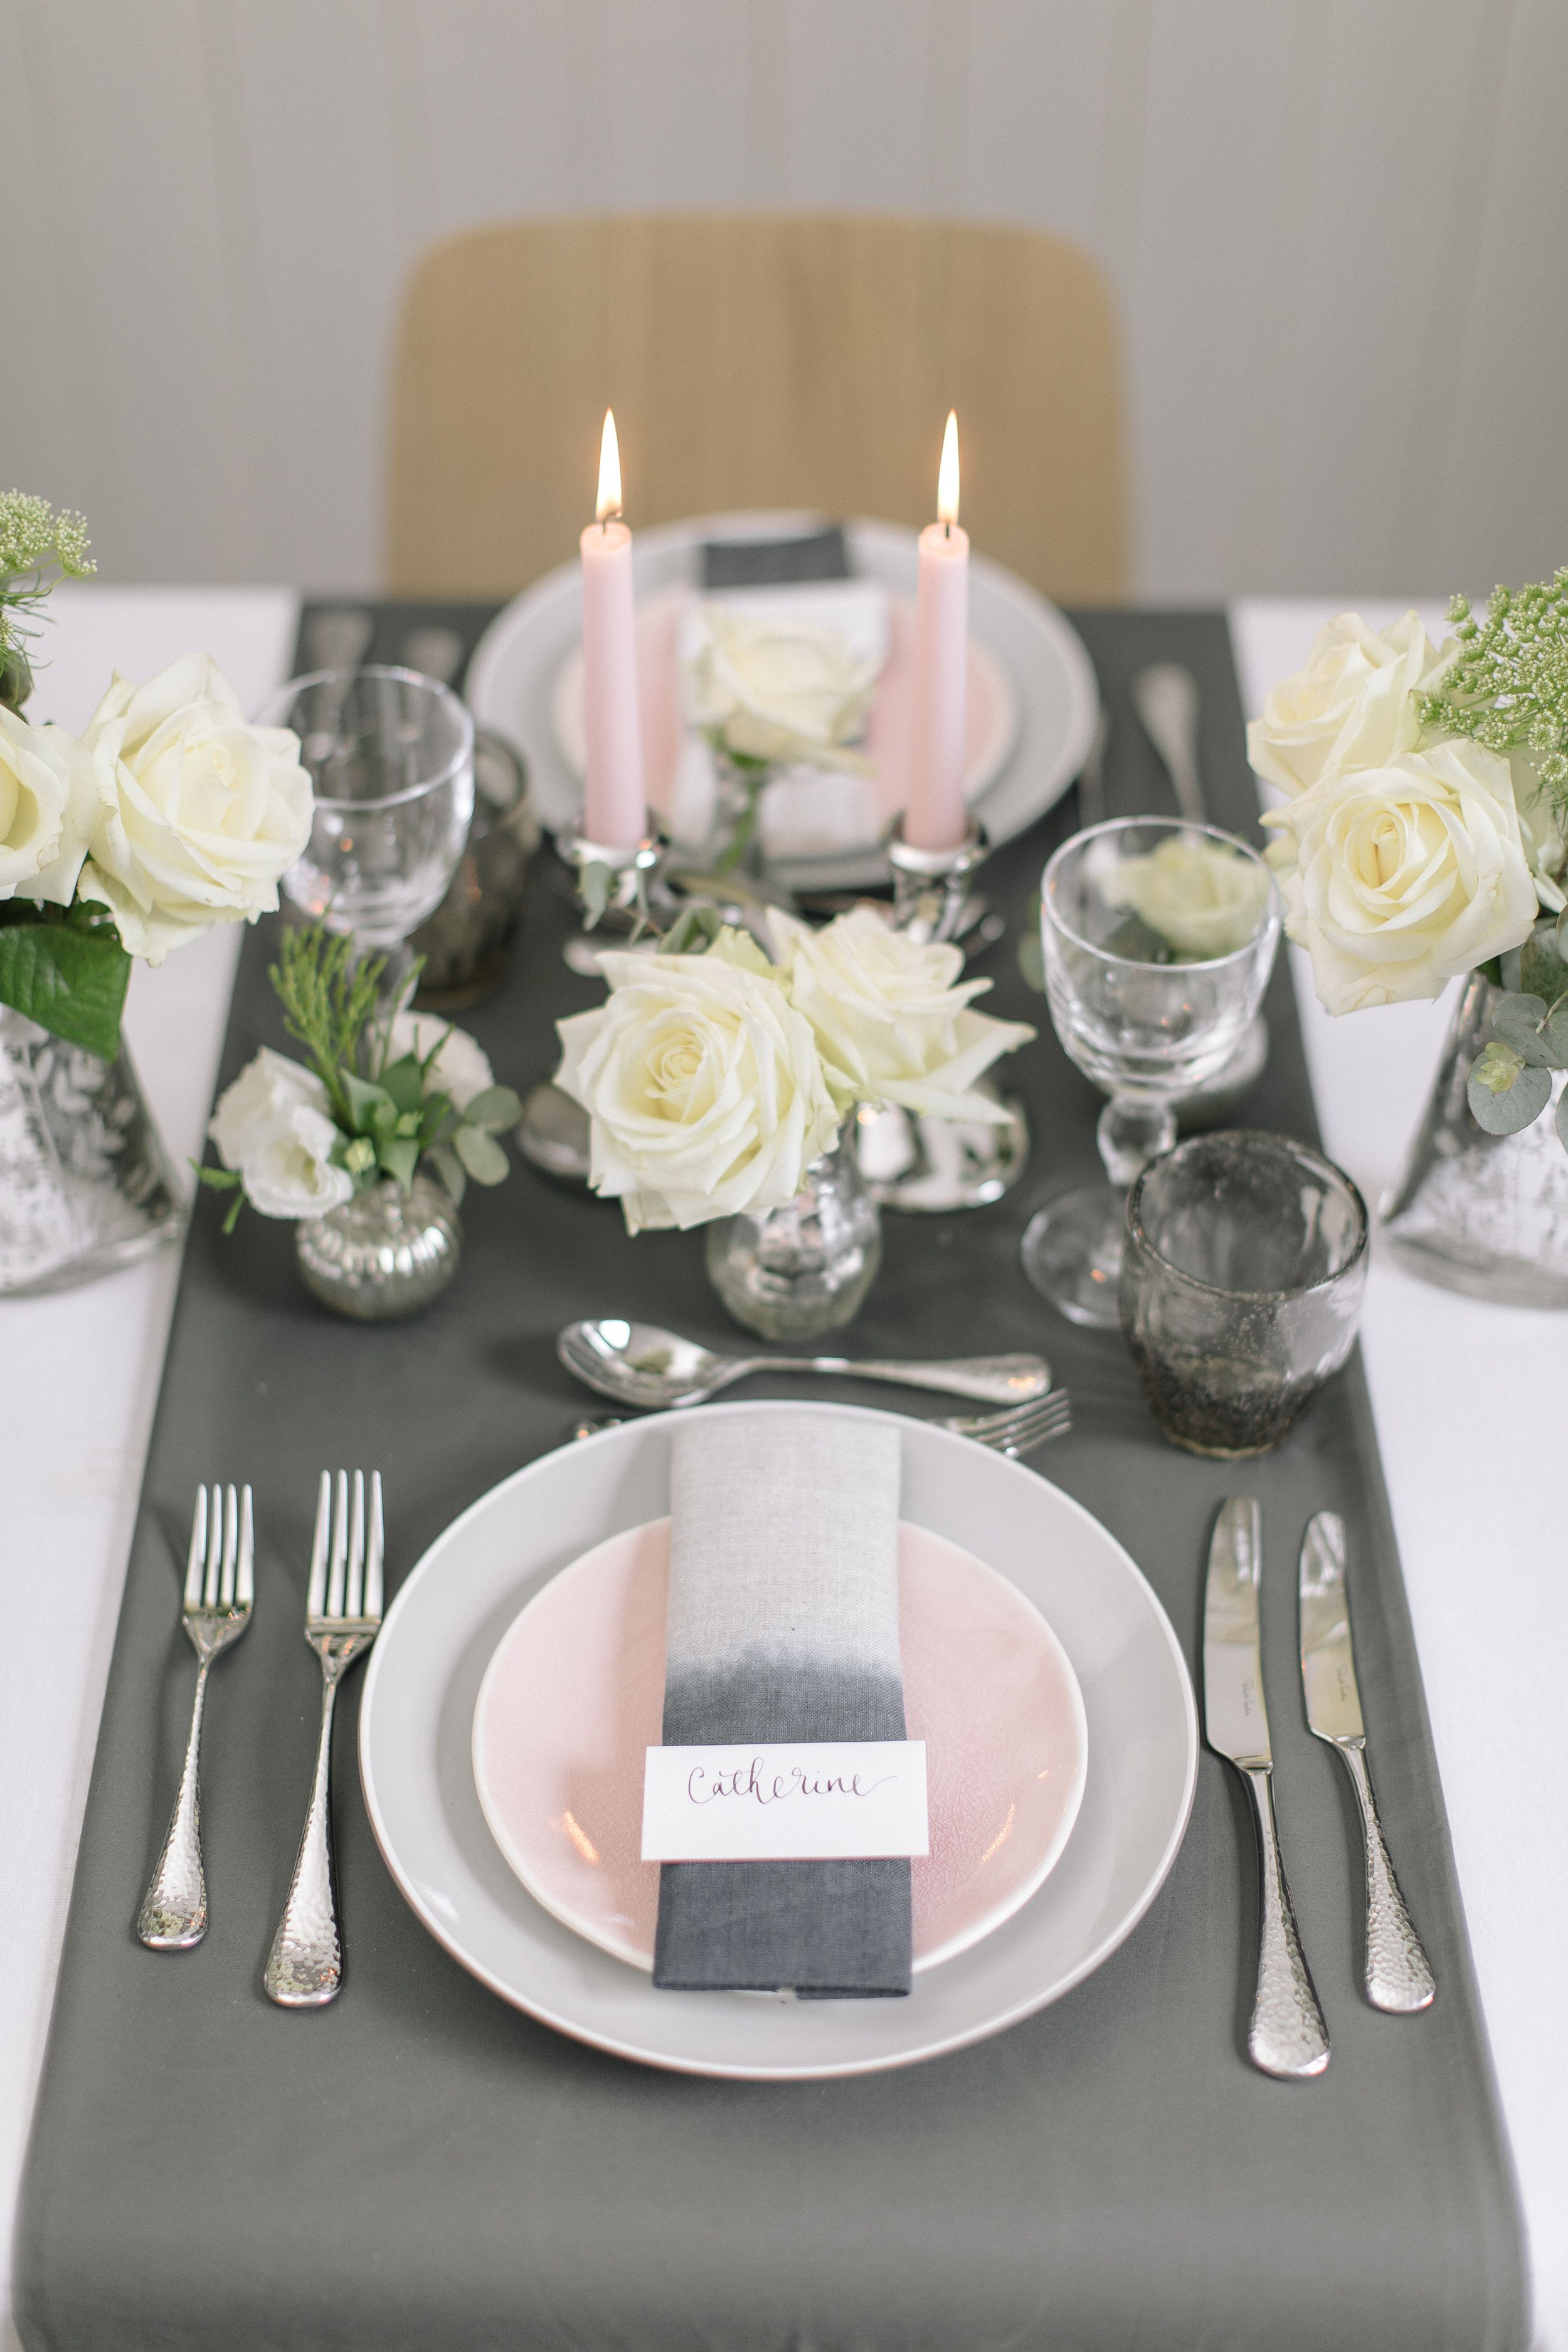 Robert Welch Fine Dining Cutlery Table Scape Table Decor Centrepiece Wedding Decor